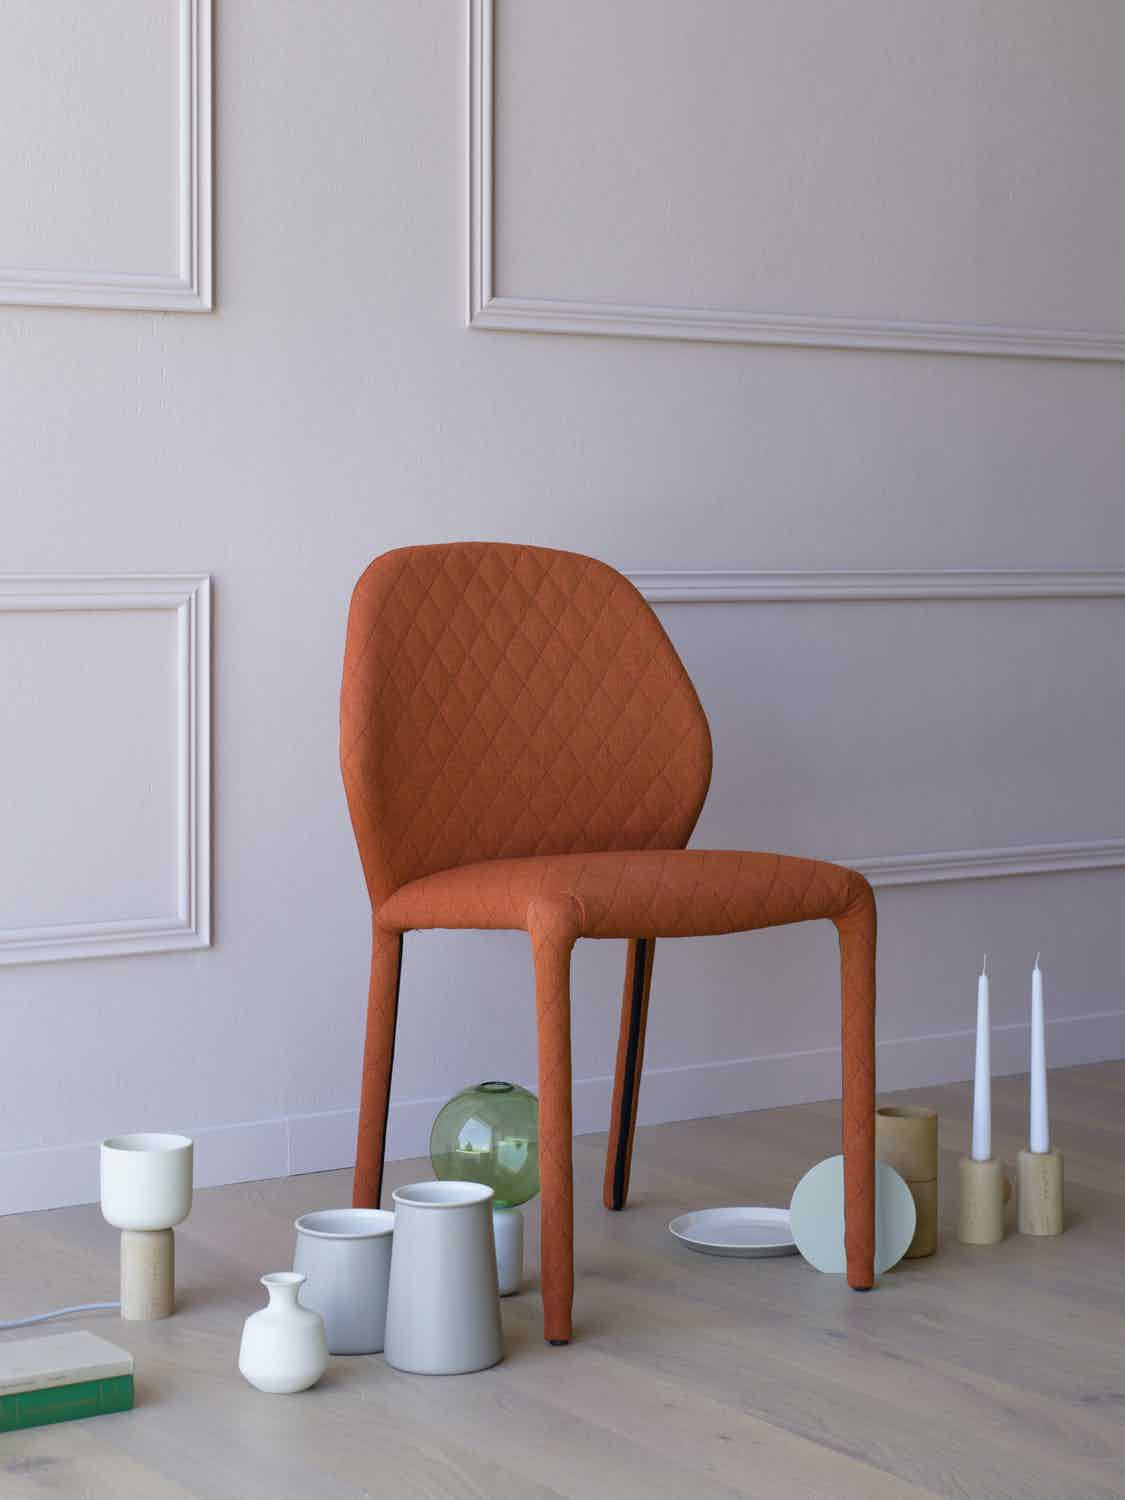 Dumbo Chair by Miniforms, now available at Haute Living